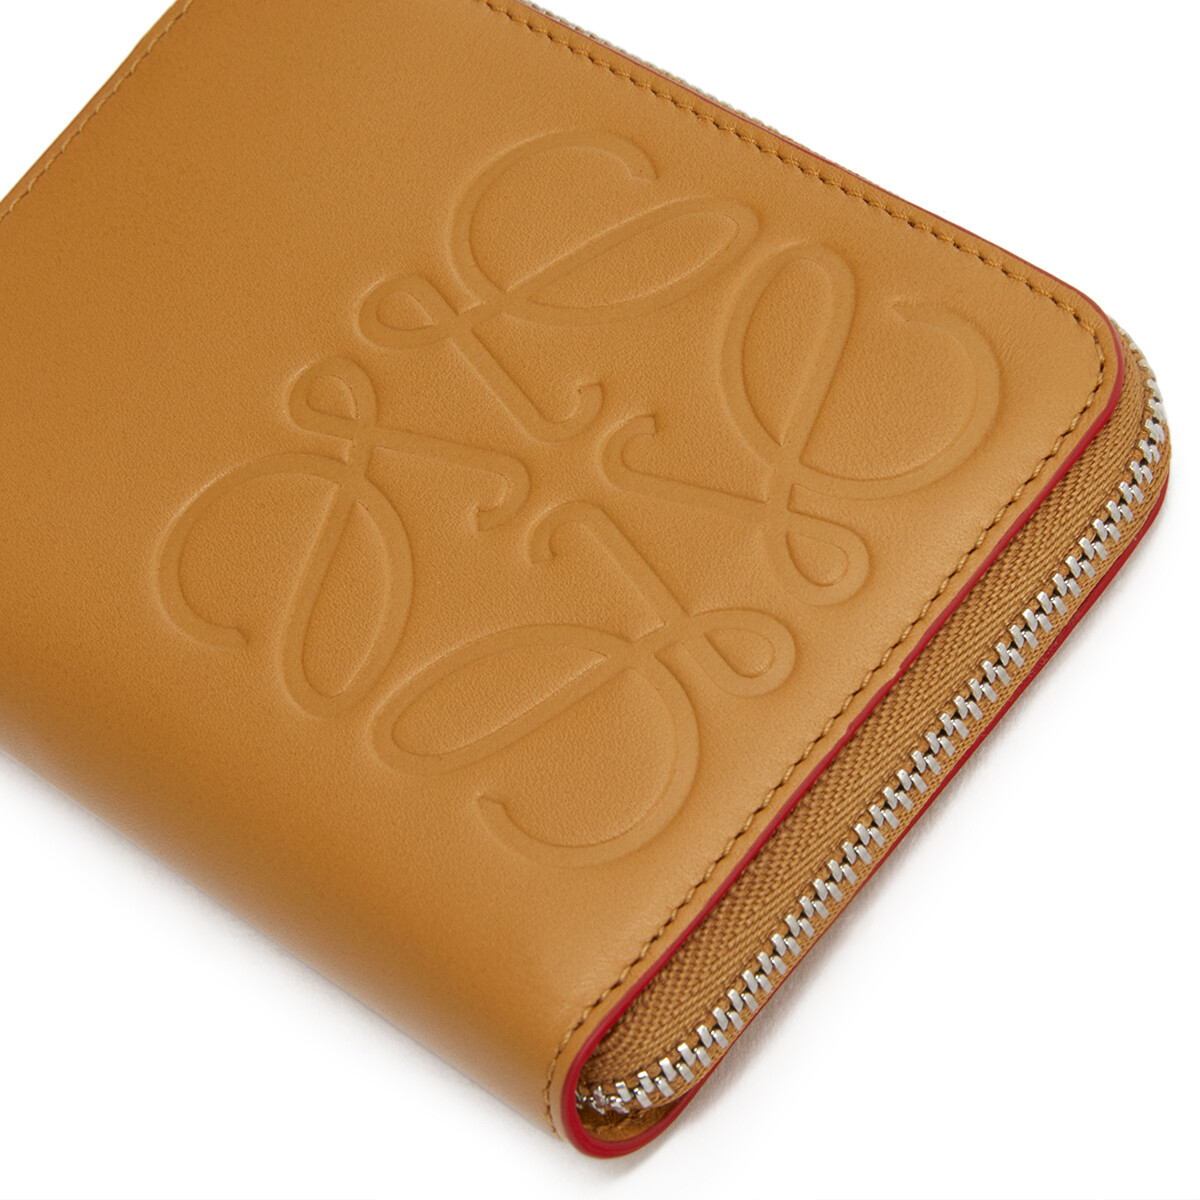 LOEWE Brand 6 Card Zip Wallet Honey front